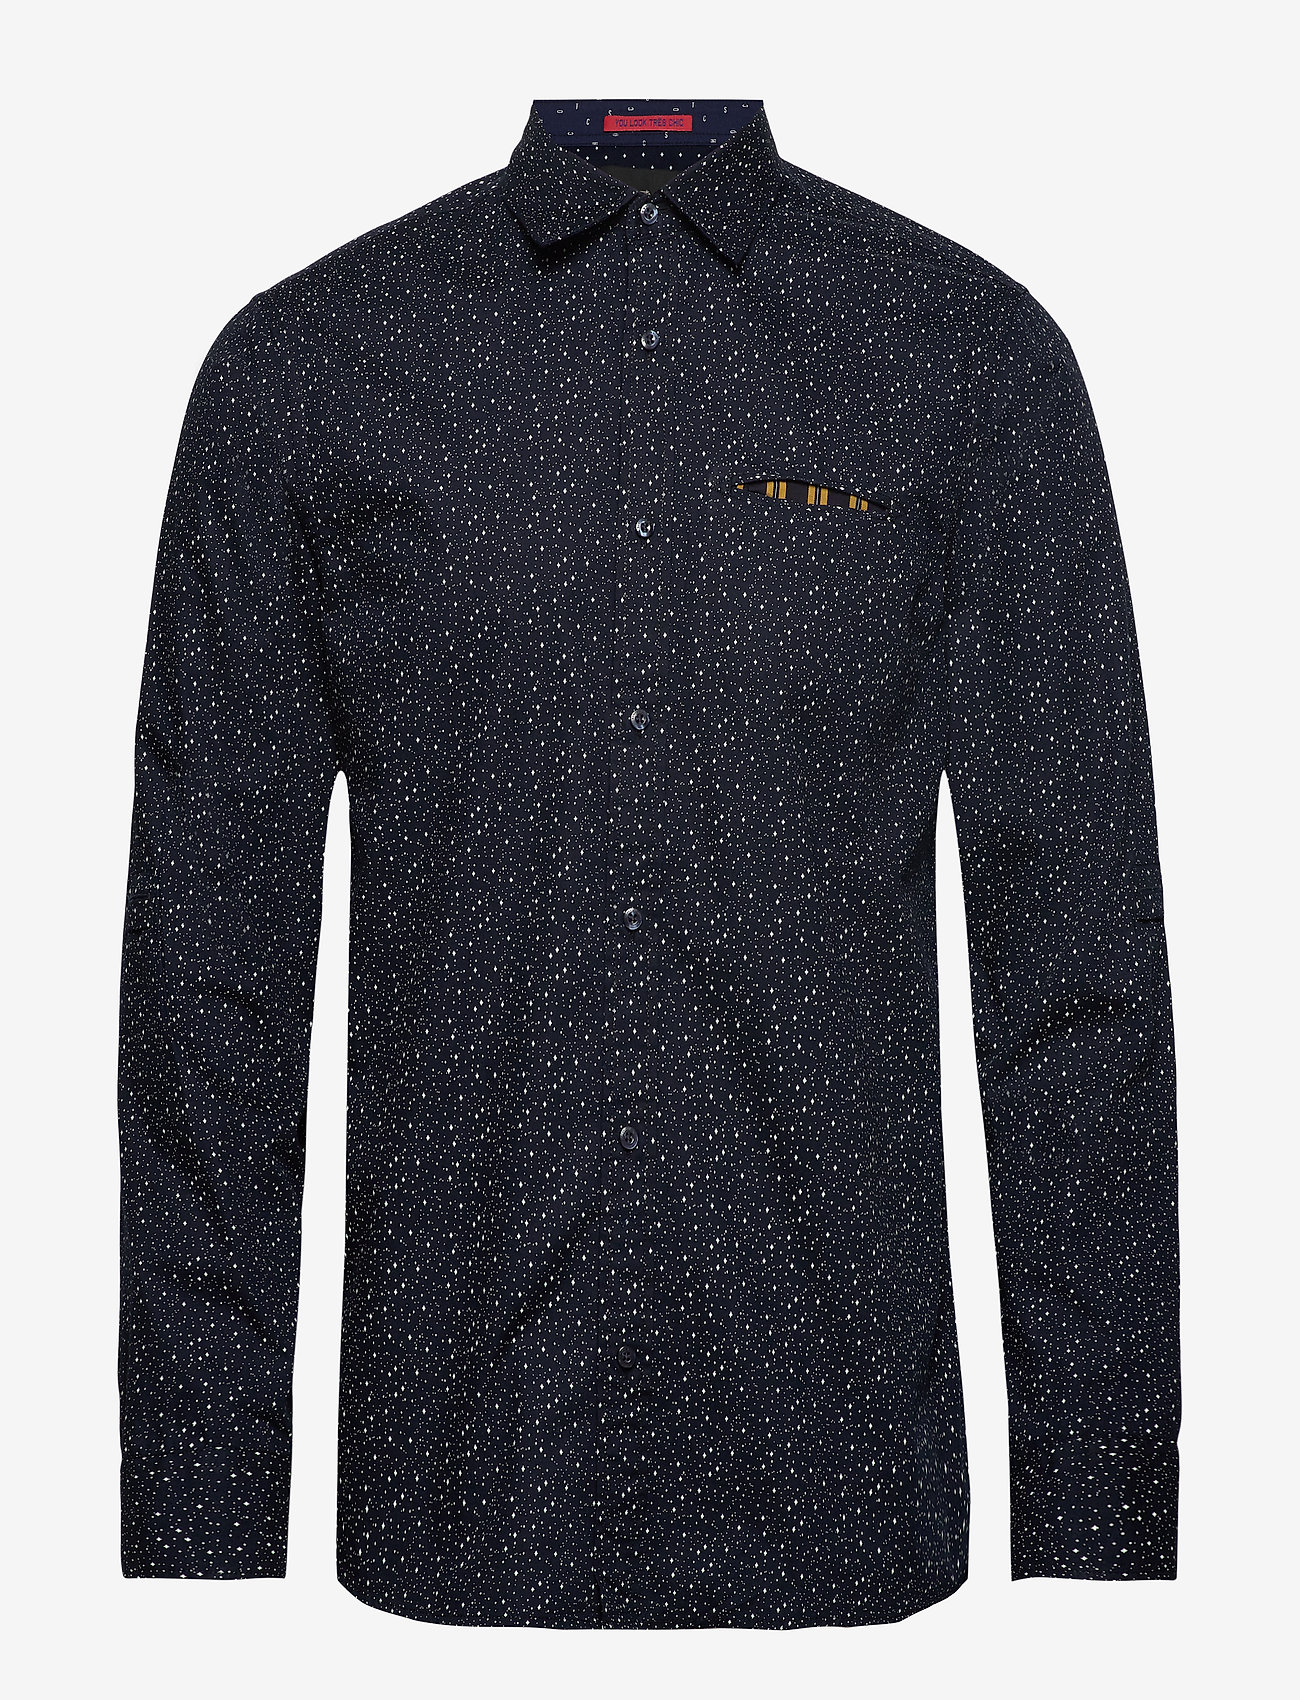 Scotch & Soda - REGULAR FIT- Classic all-over printed pochet shirt - chemises d'affaires - combo f - 0